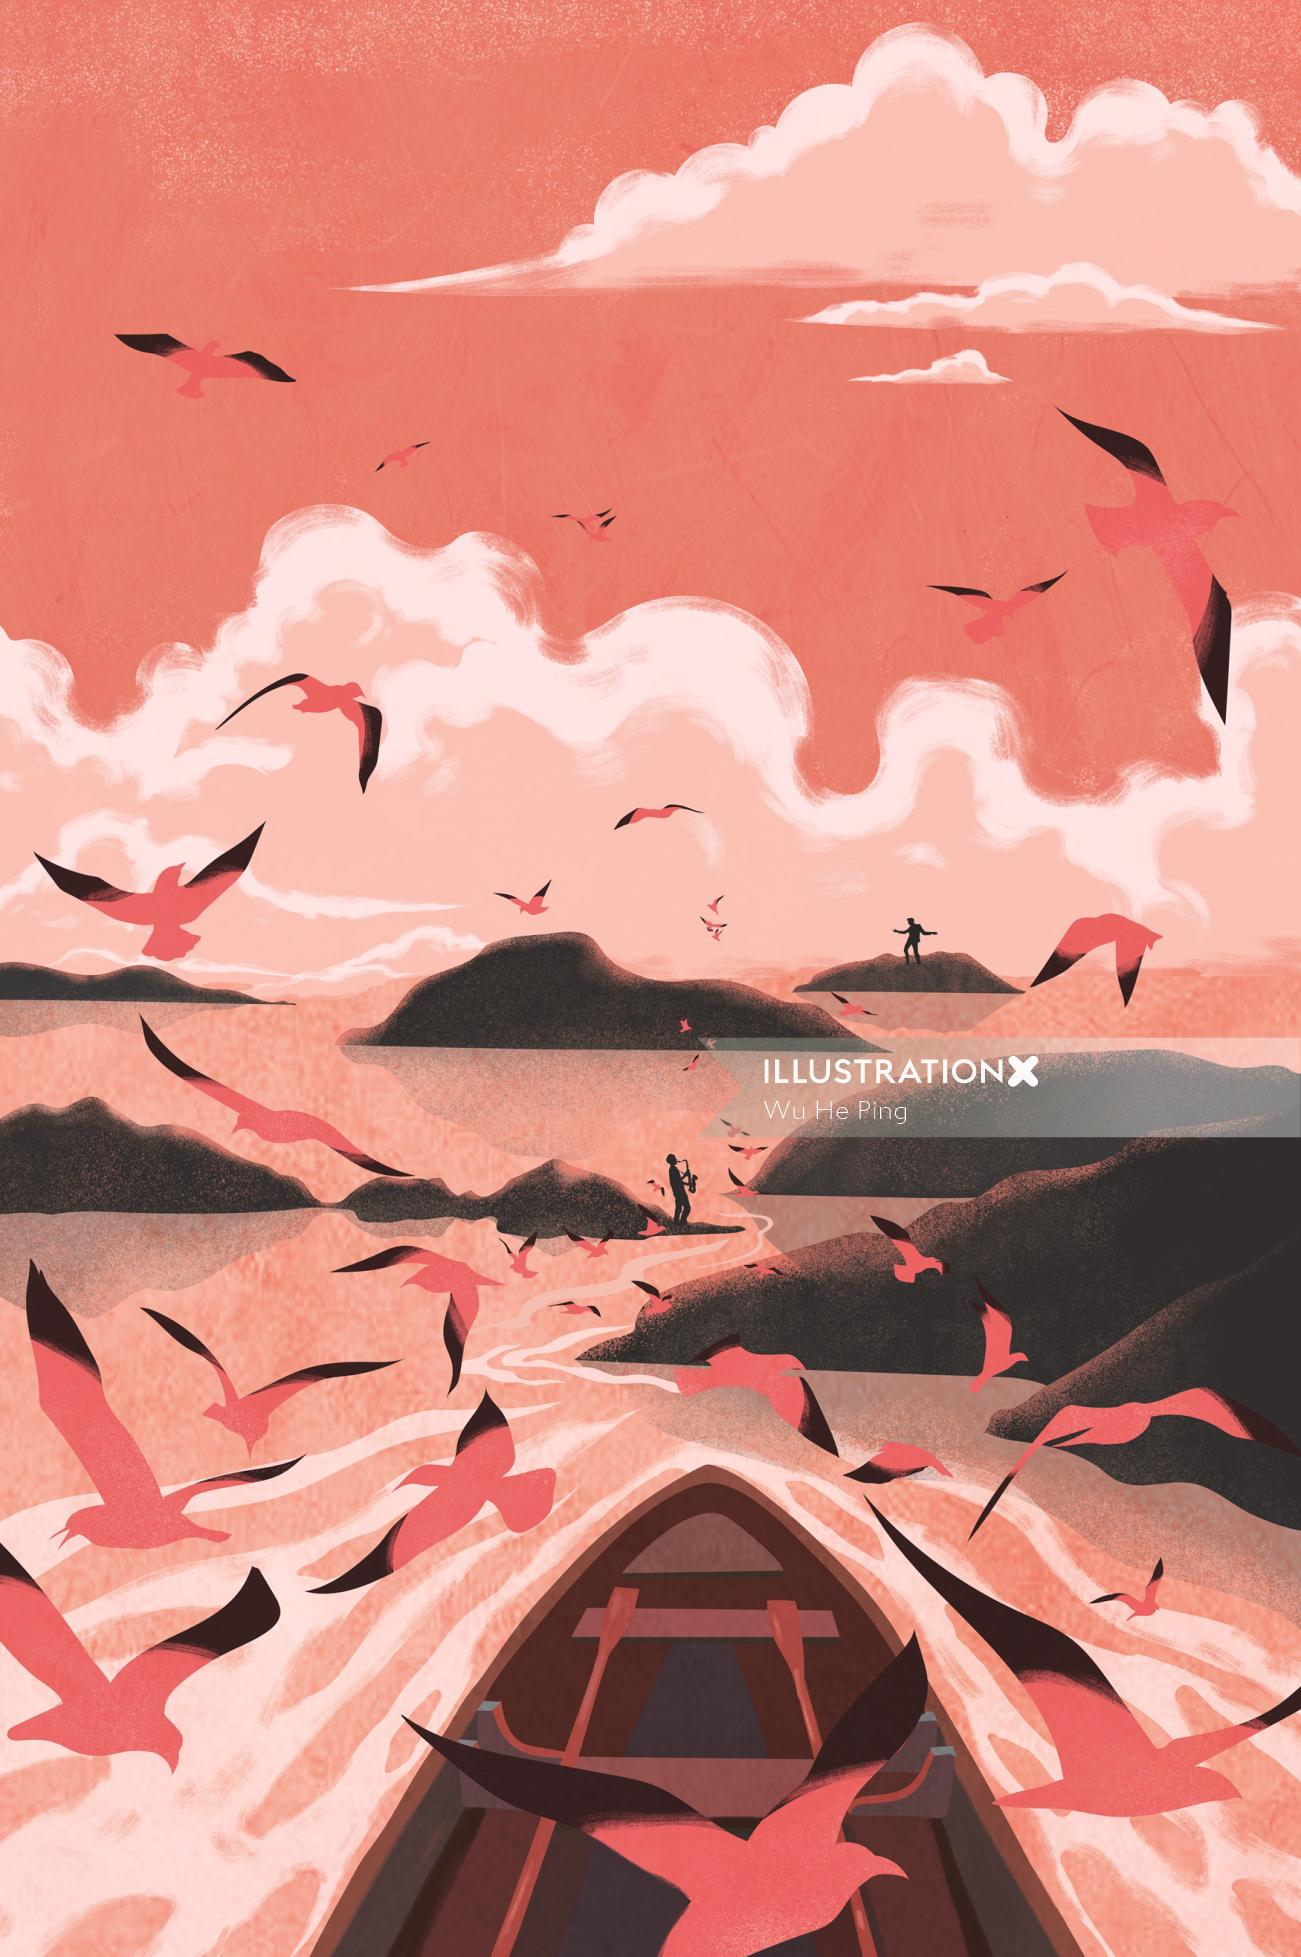 Nature filled with birds